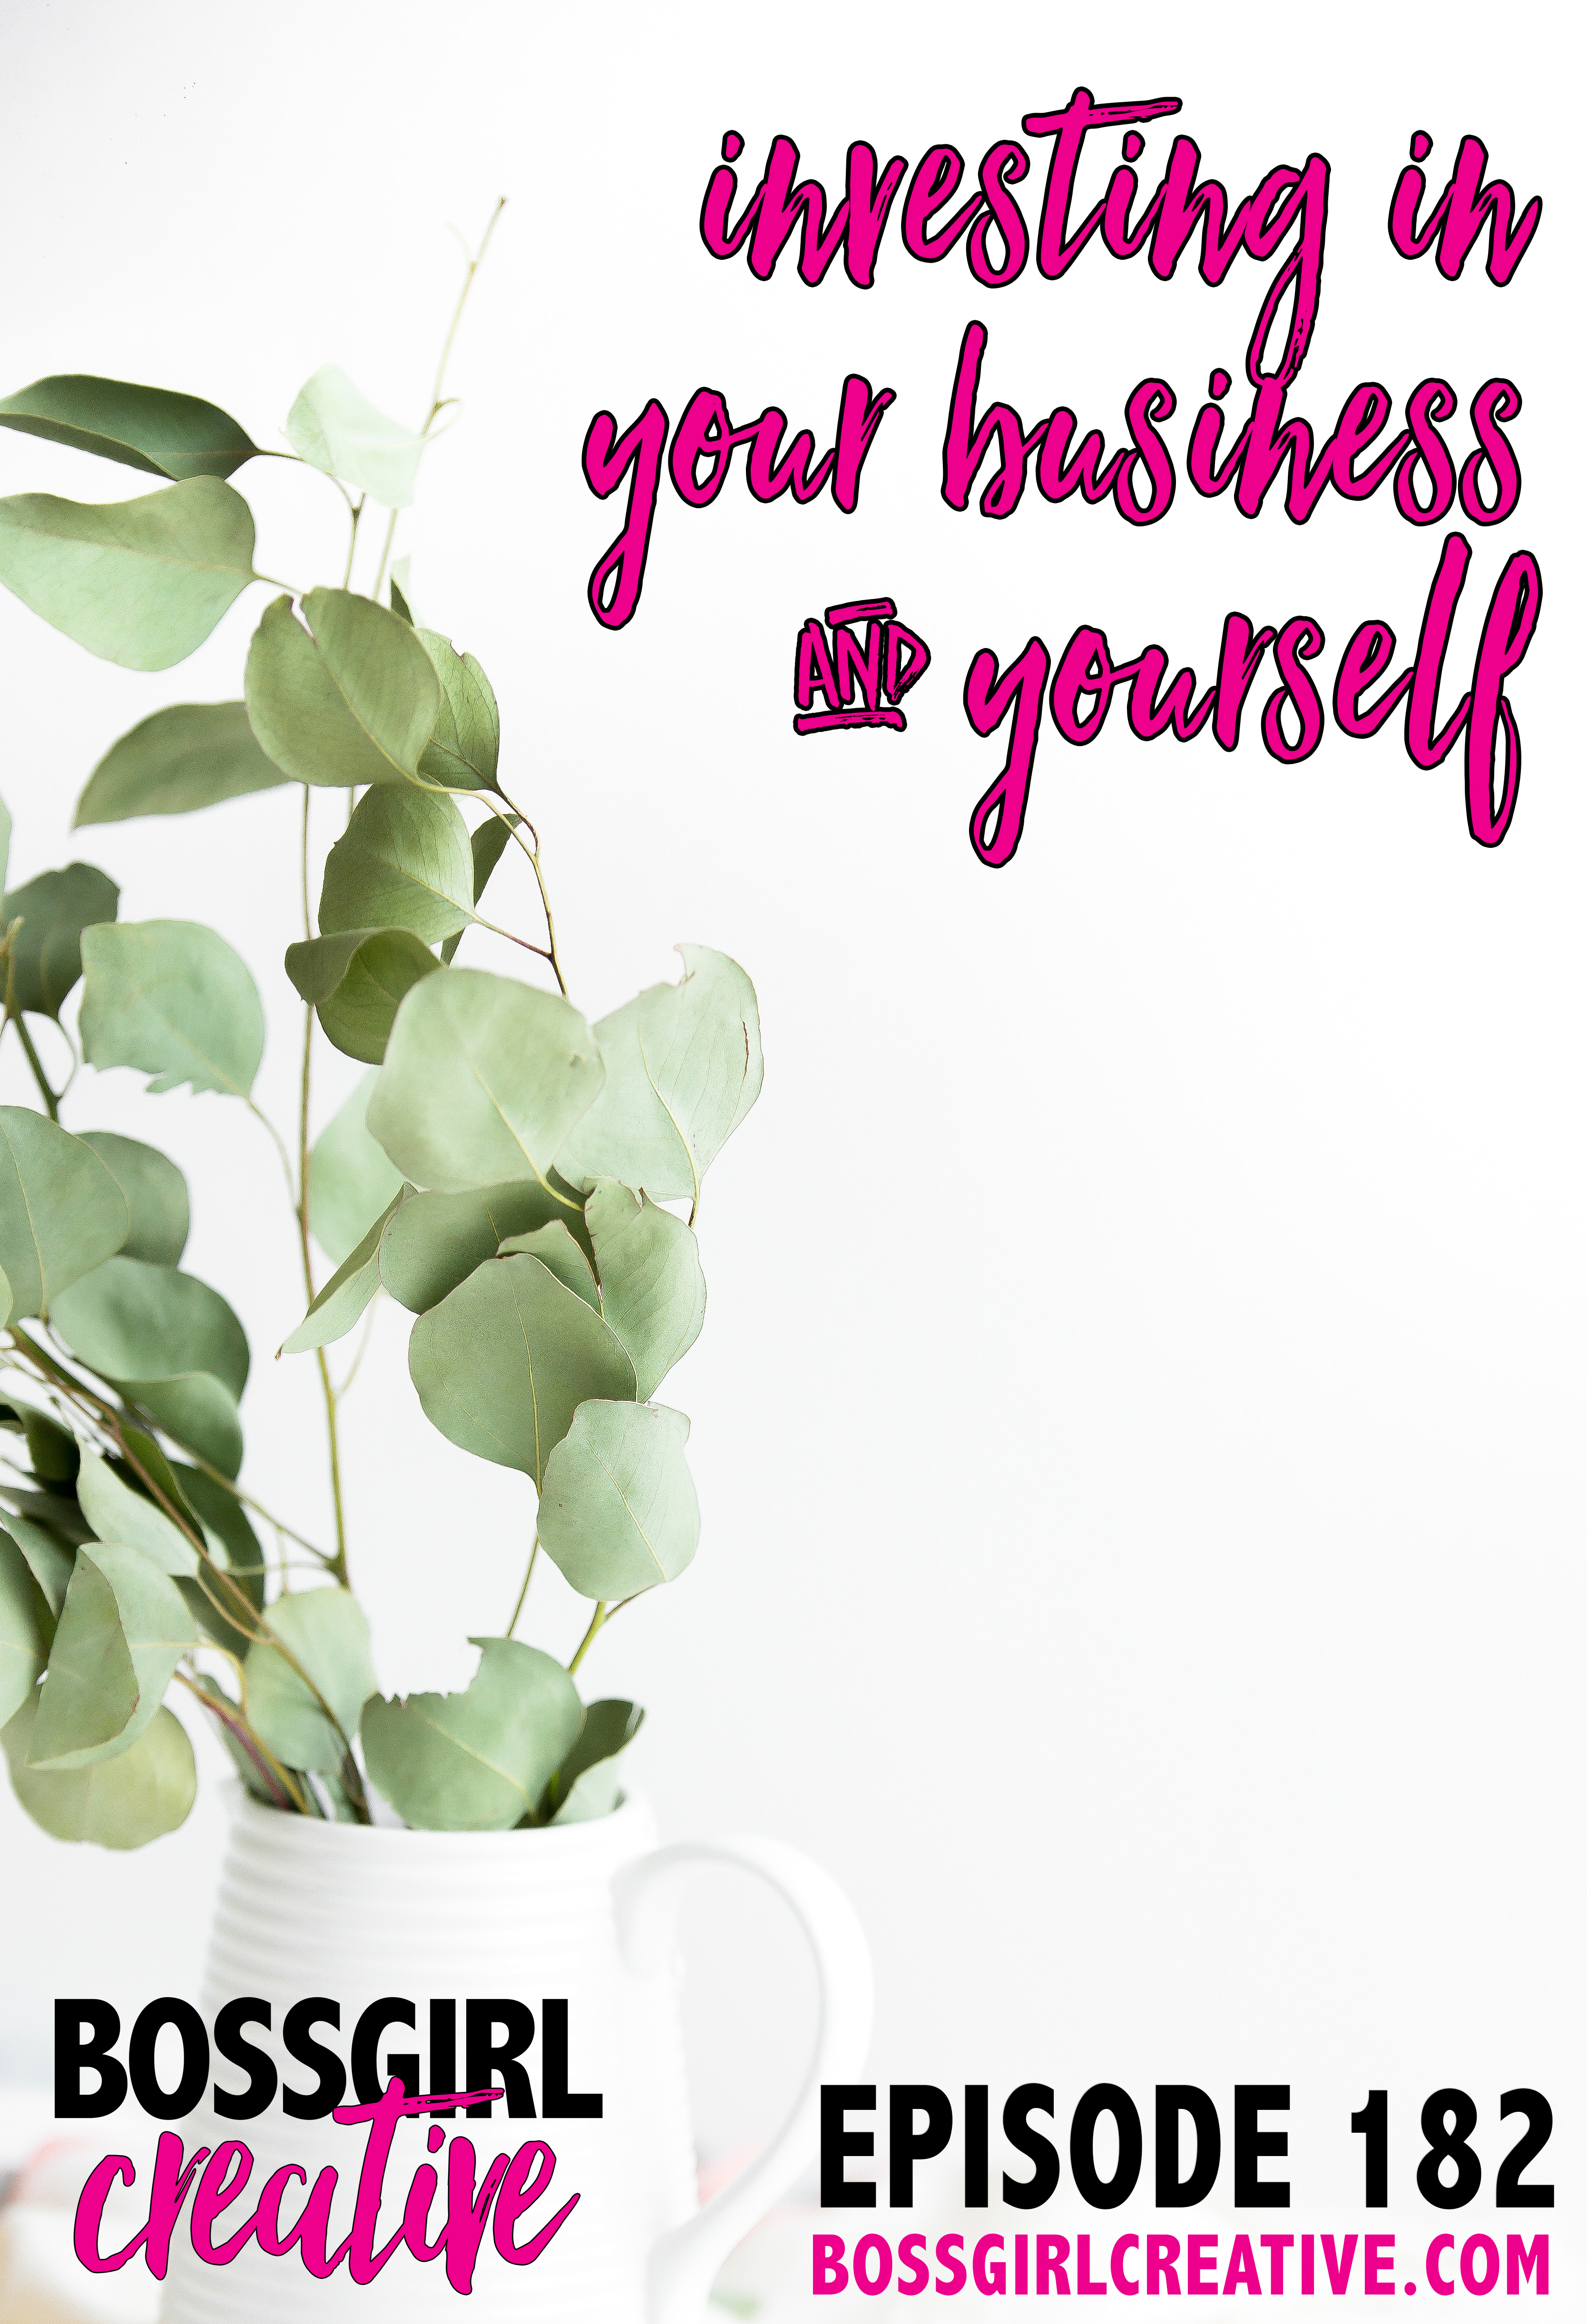 Take a listen to Episode 182 of the Boss Girl Creative podcast to learn more about the importance of investing in yourself and your business.